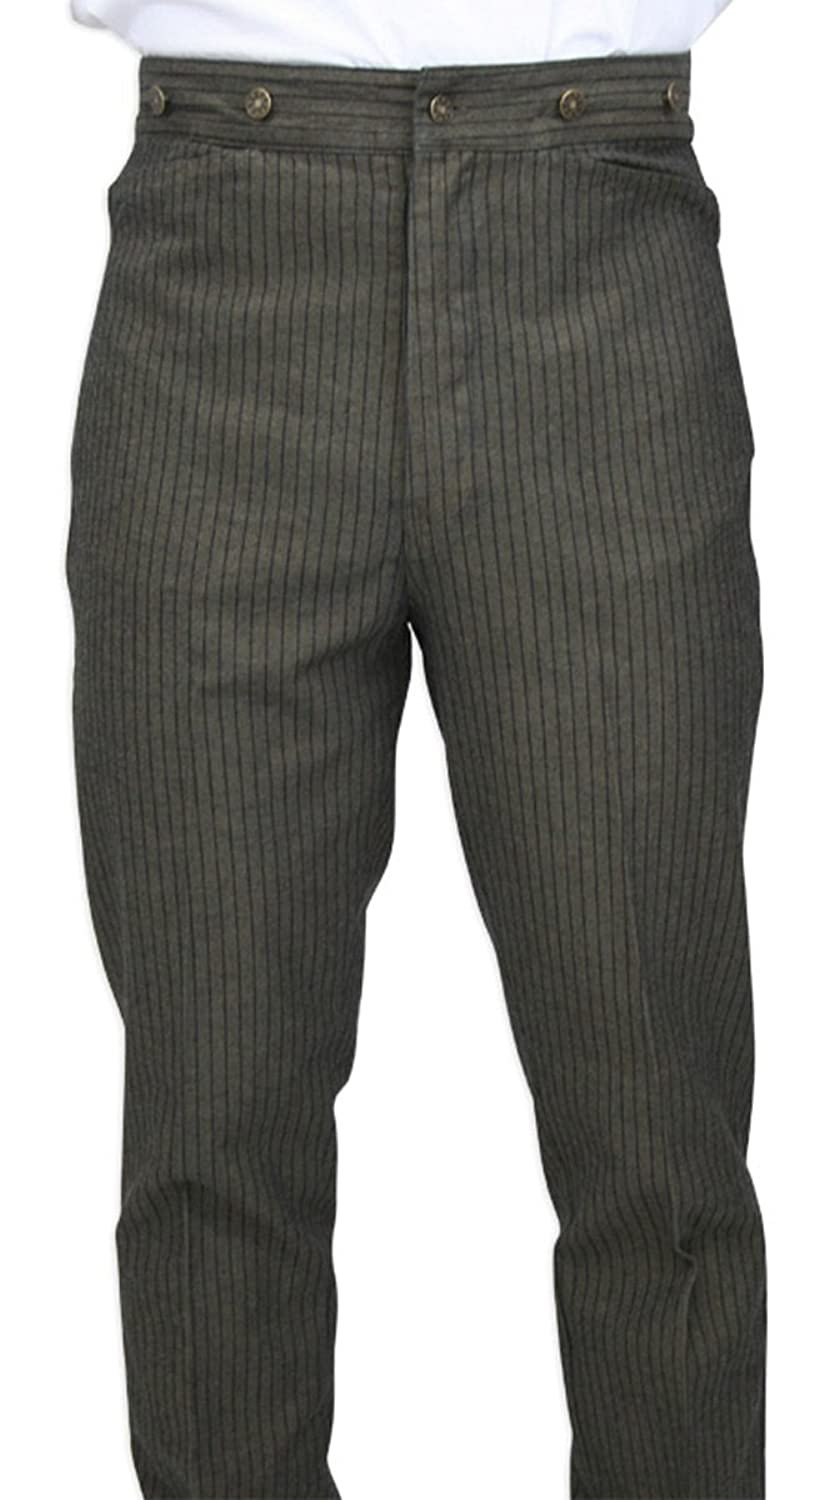 Men's Steampunk Costume Essentials High Waist Cotton Ludlow Striped Trousers $59.95 AT vintagedancer.com